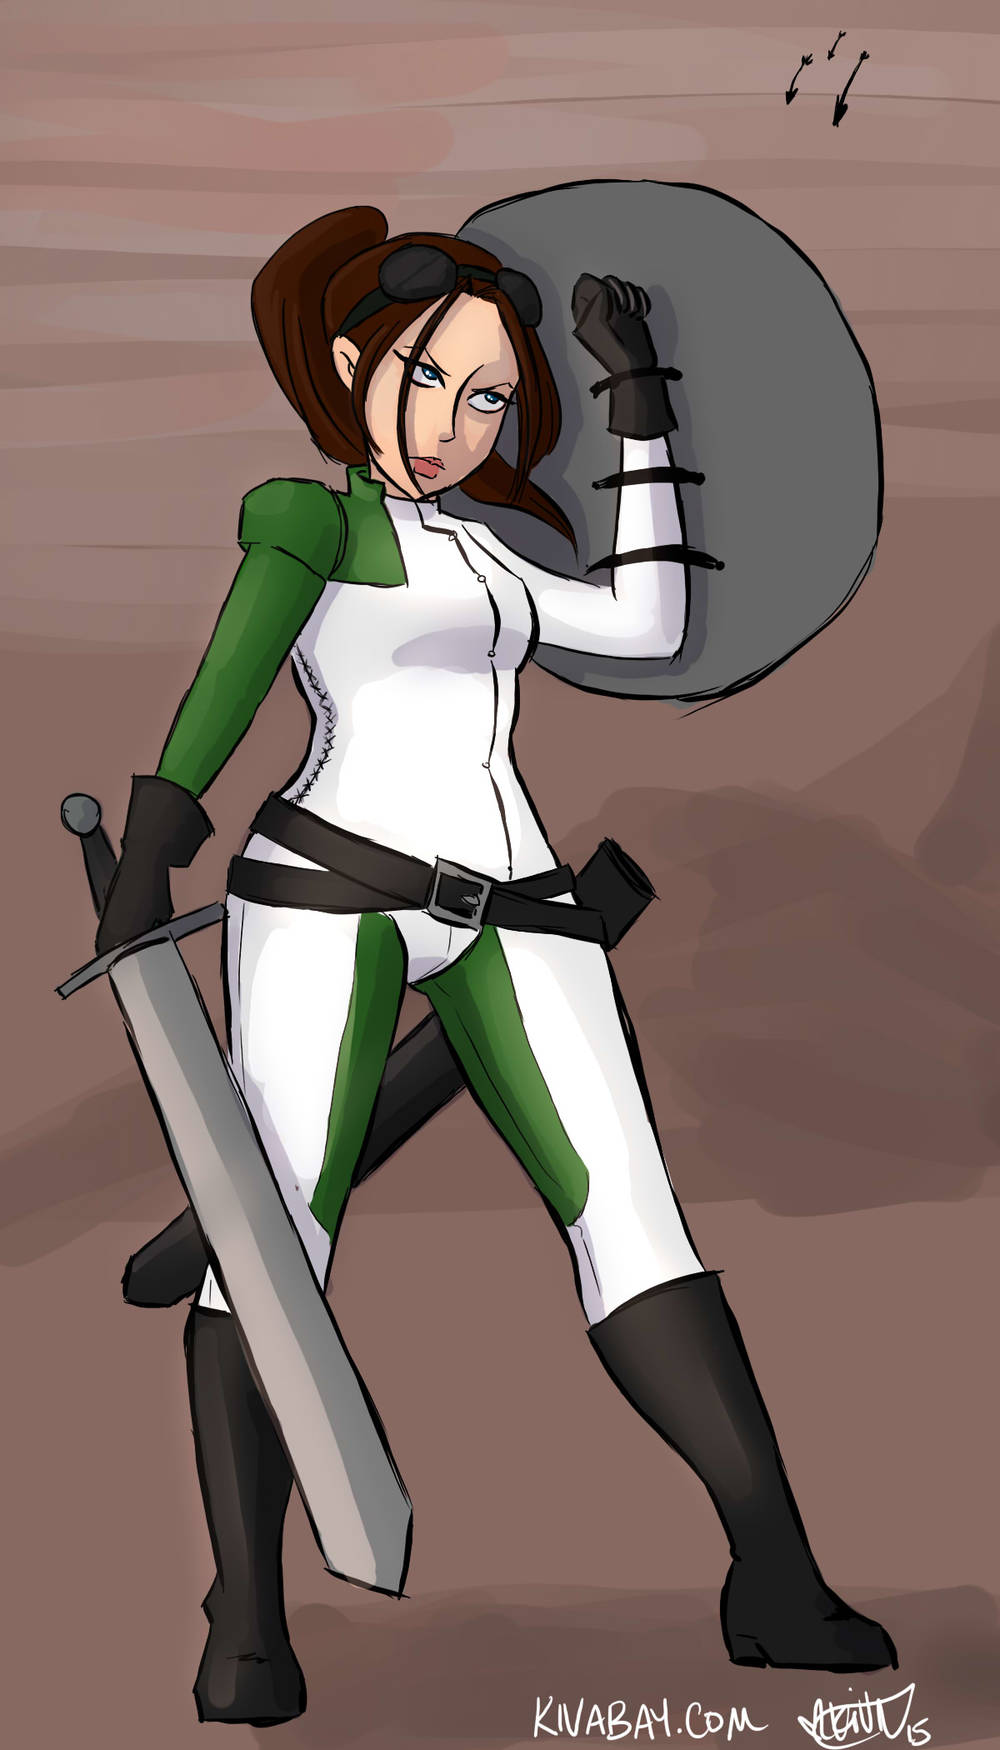 Brianna Wu in Revolution 60-inspired armor for #feministdeck